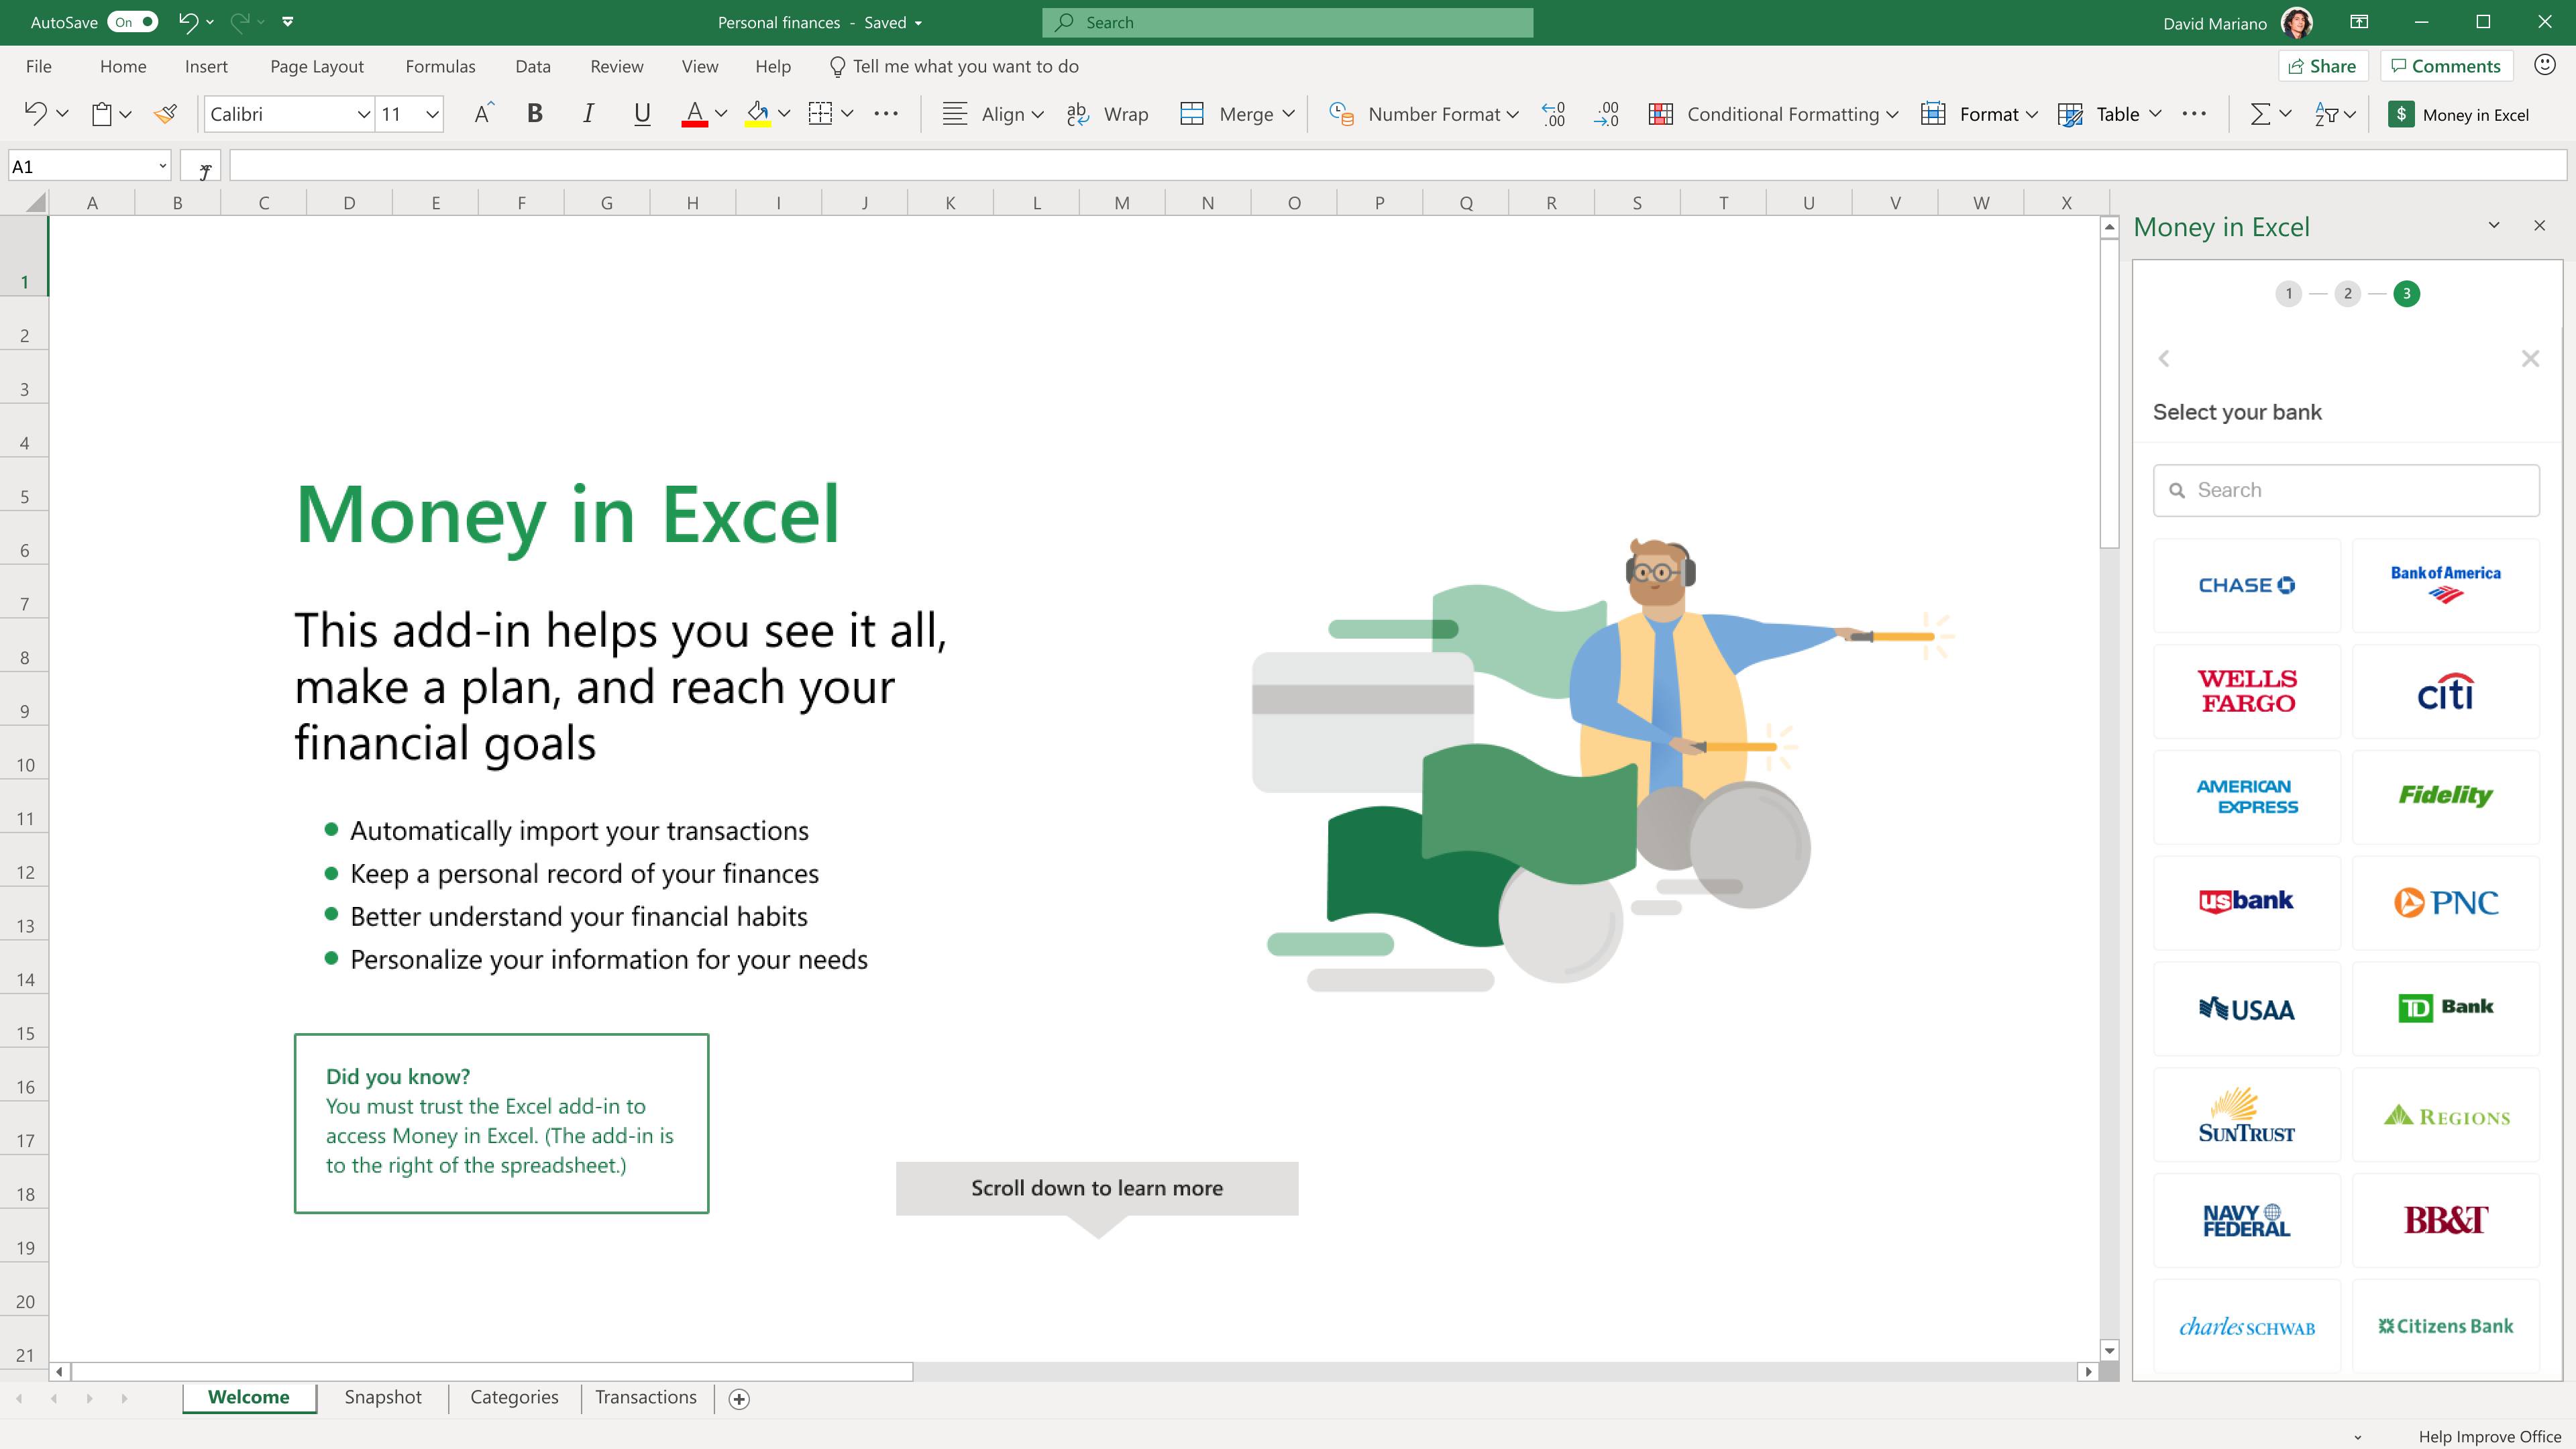 With Plaid partnership, Microsoft Excel is now a fintech app